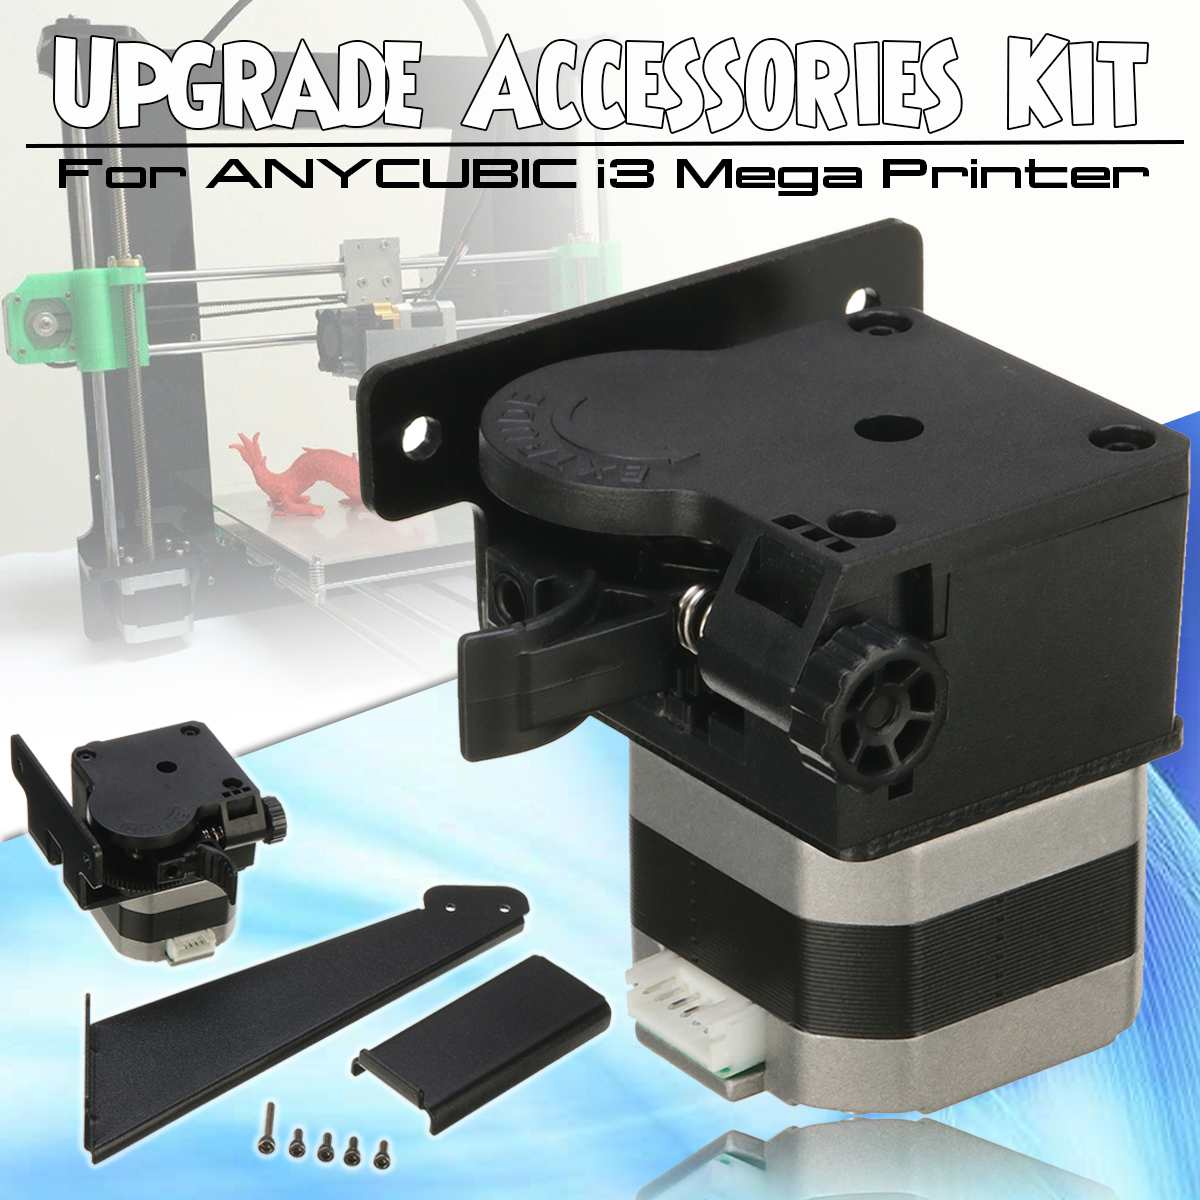 NEW 3D Printer Upgrade Accessories Kit With Extruder Material Holder Full Metal Mechanical Kit For ANYCUBIC I3 Mega